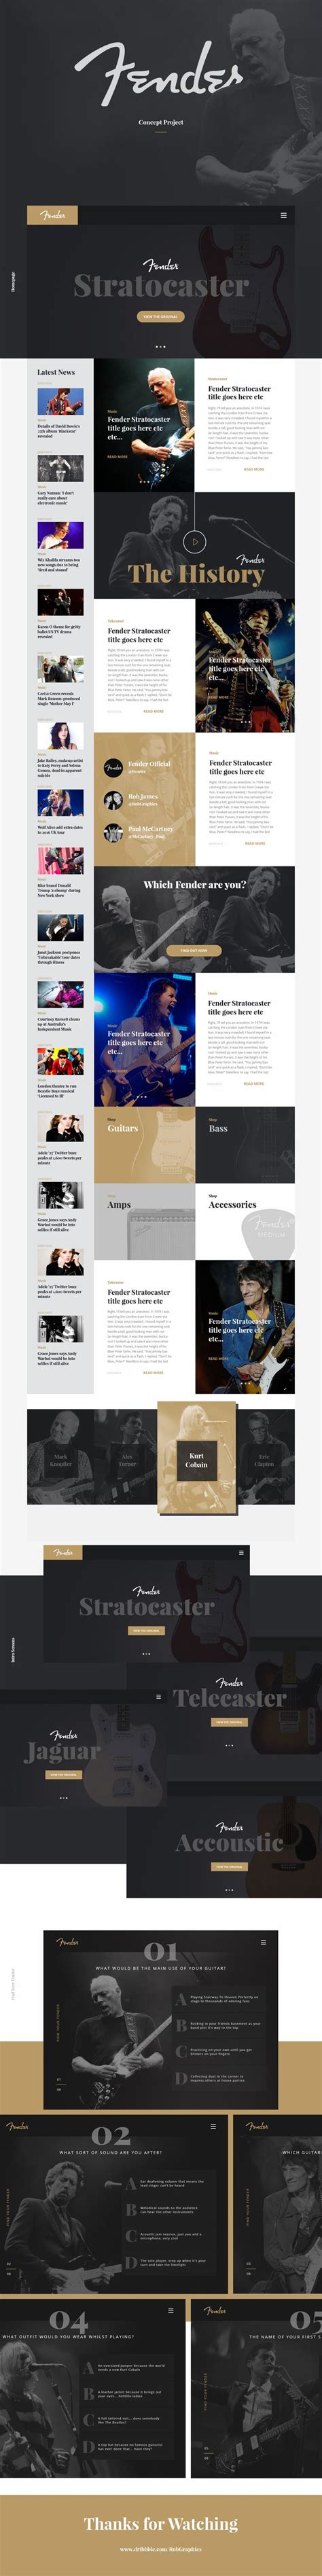 ui layout north 1103 best web design images on pinterest